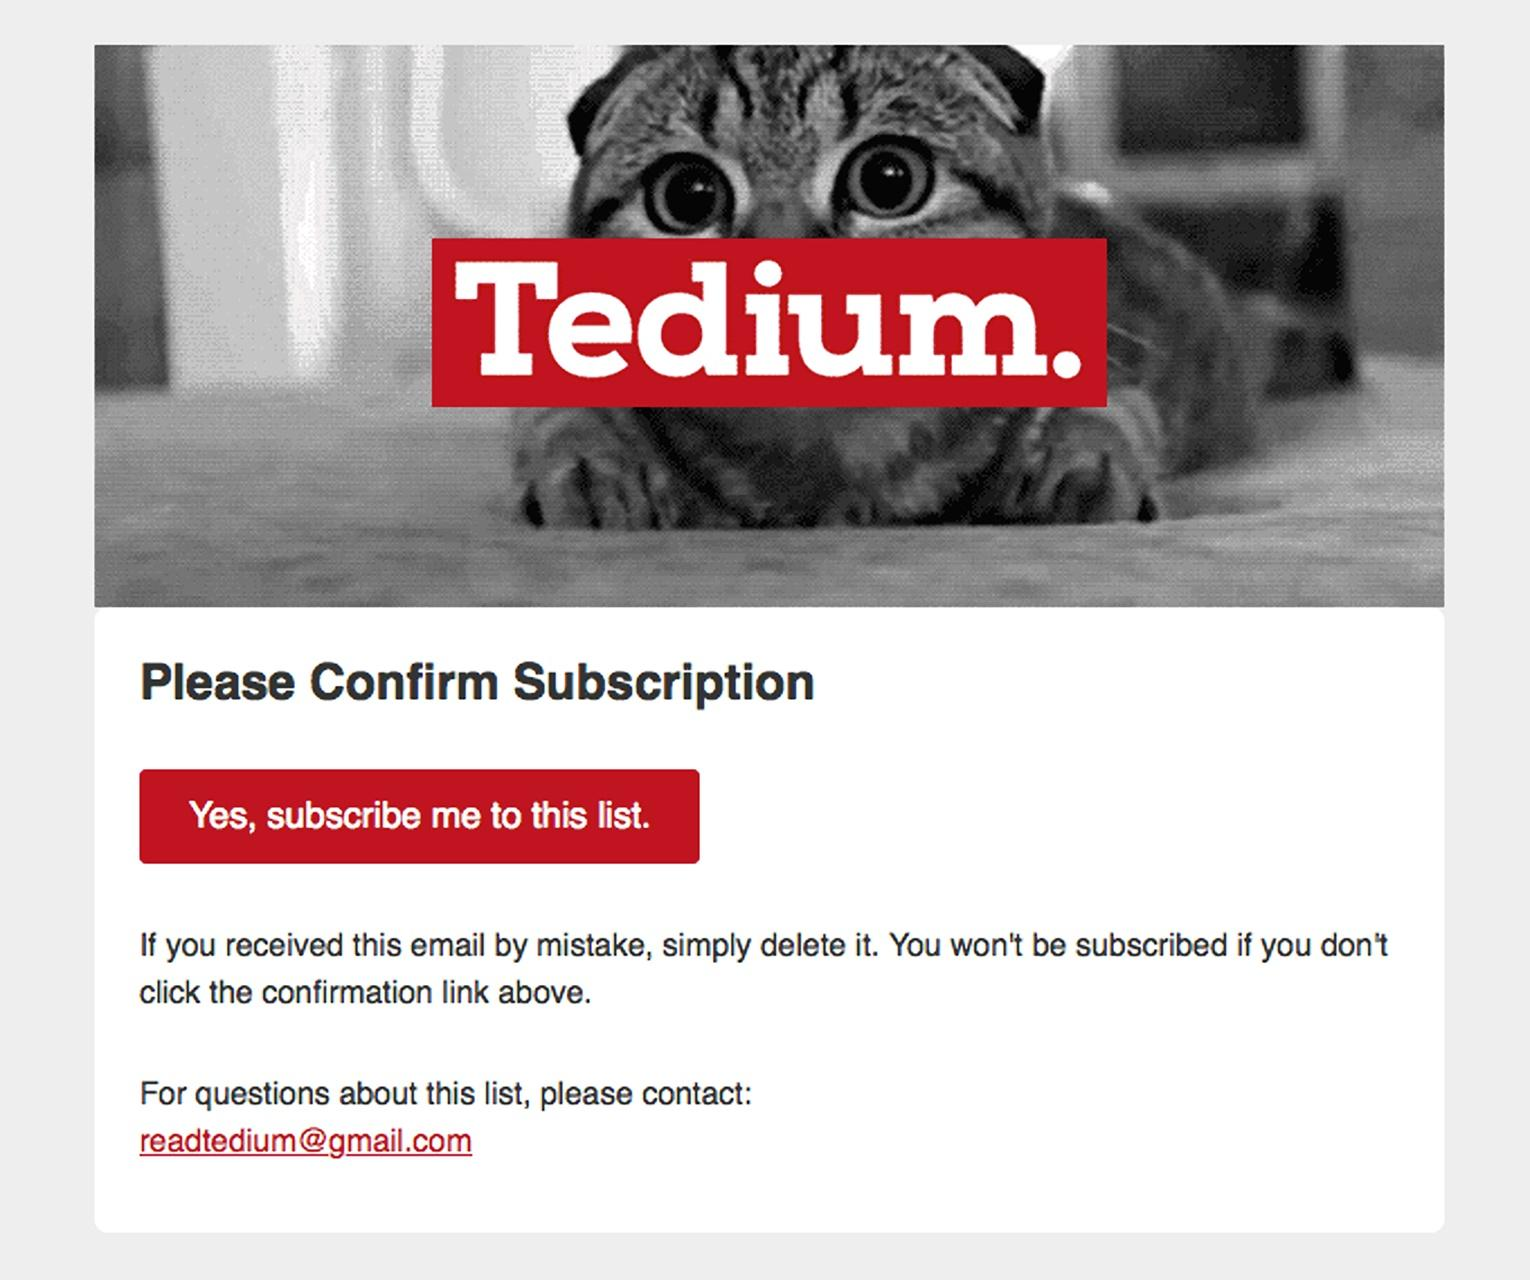 Email example from Tedium